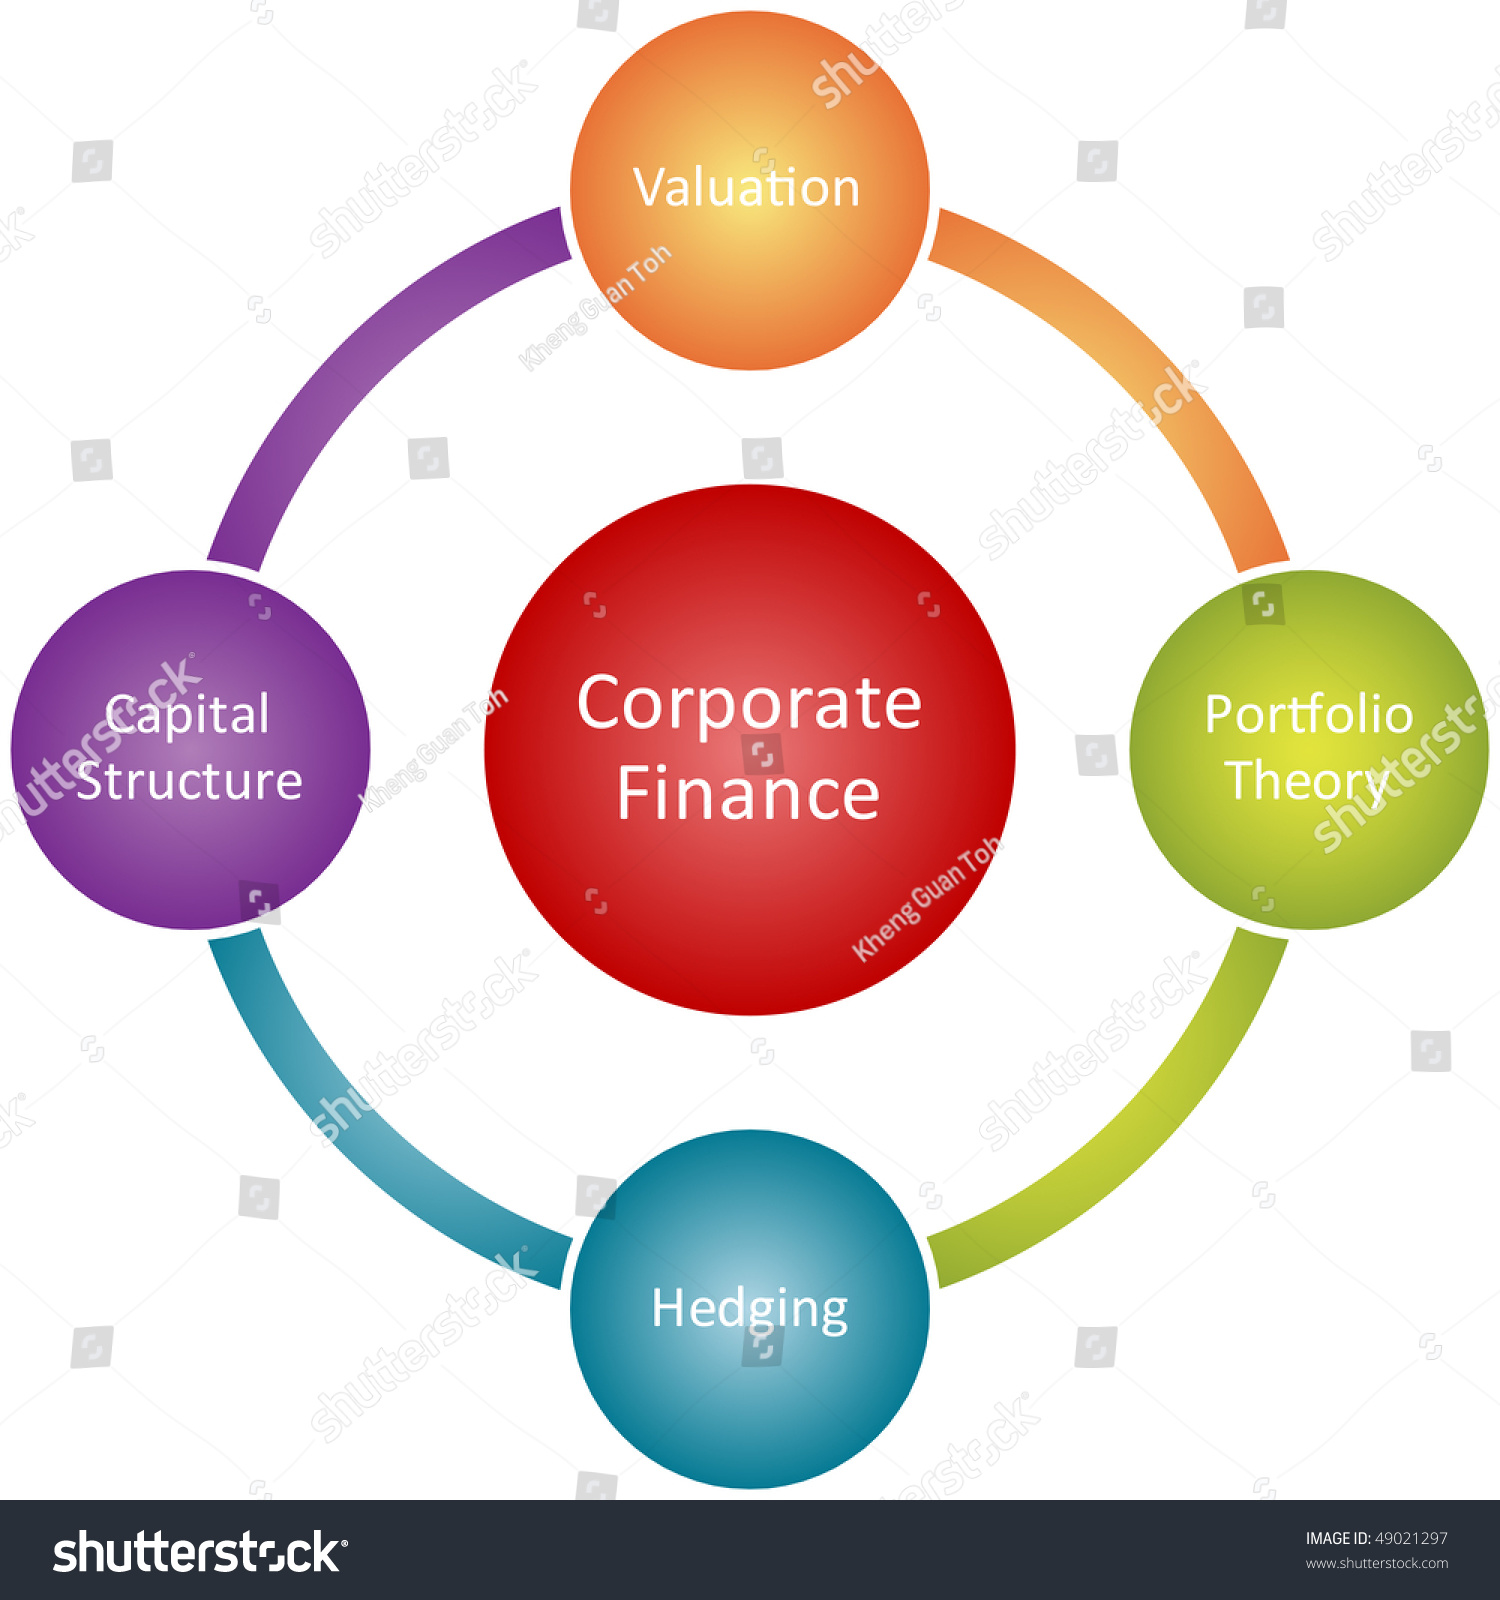 Corporate Finance: Corporate Finance Management Business Strategy Concept